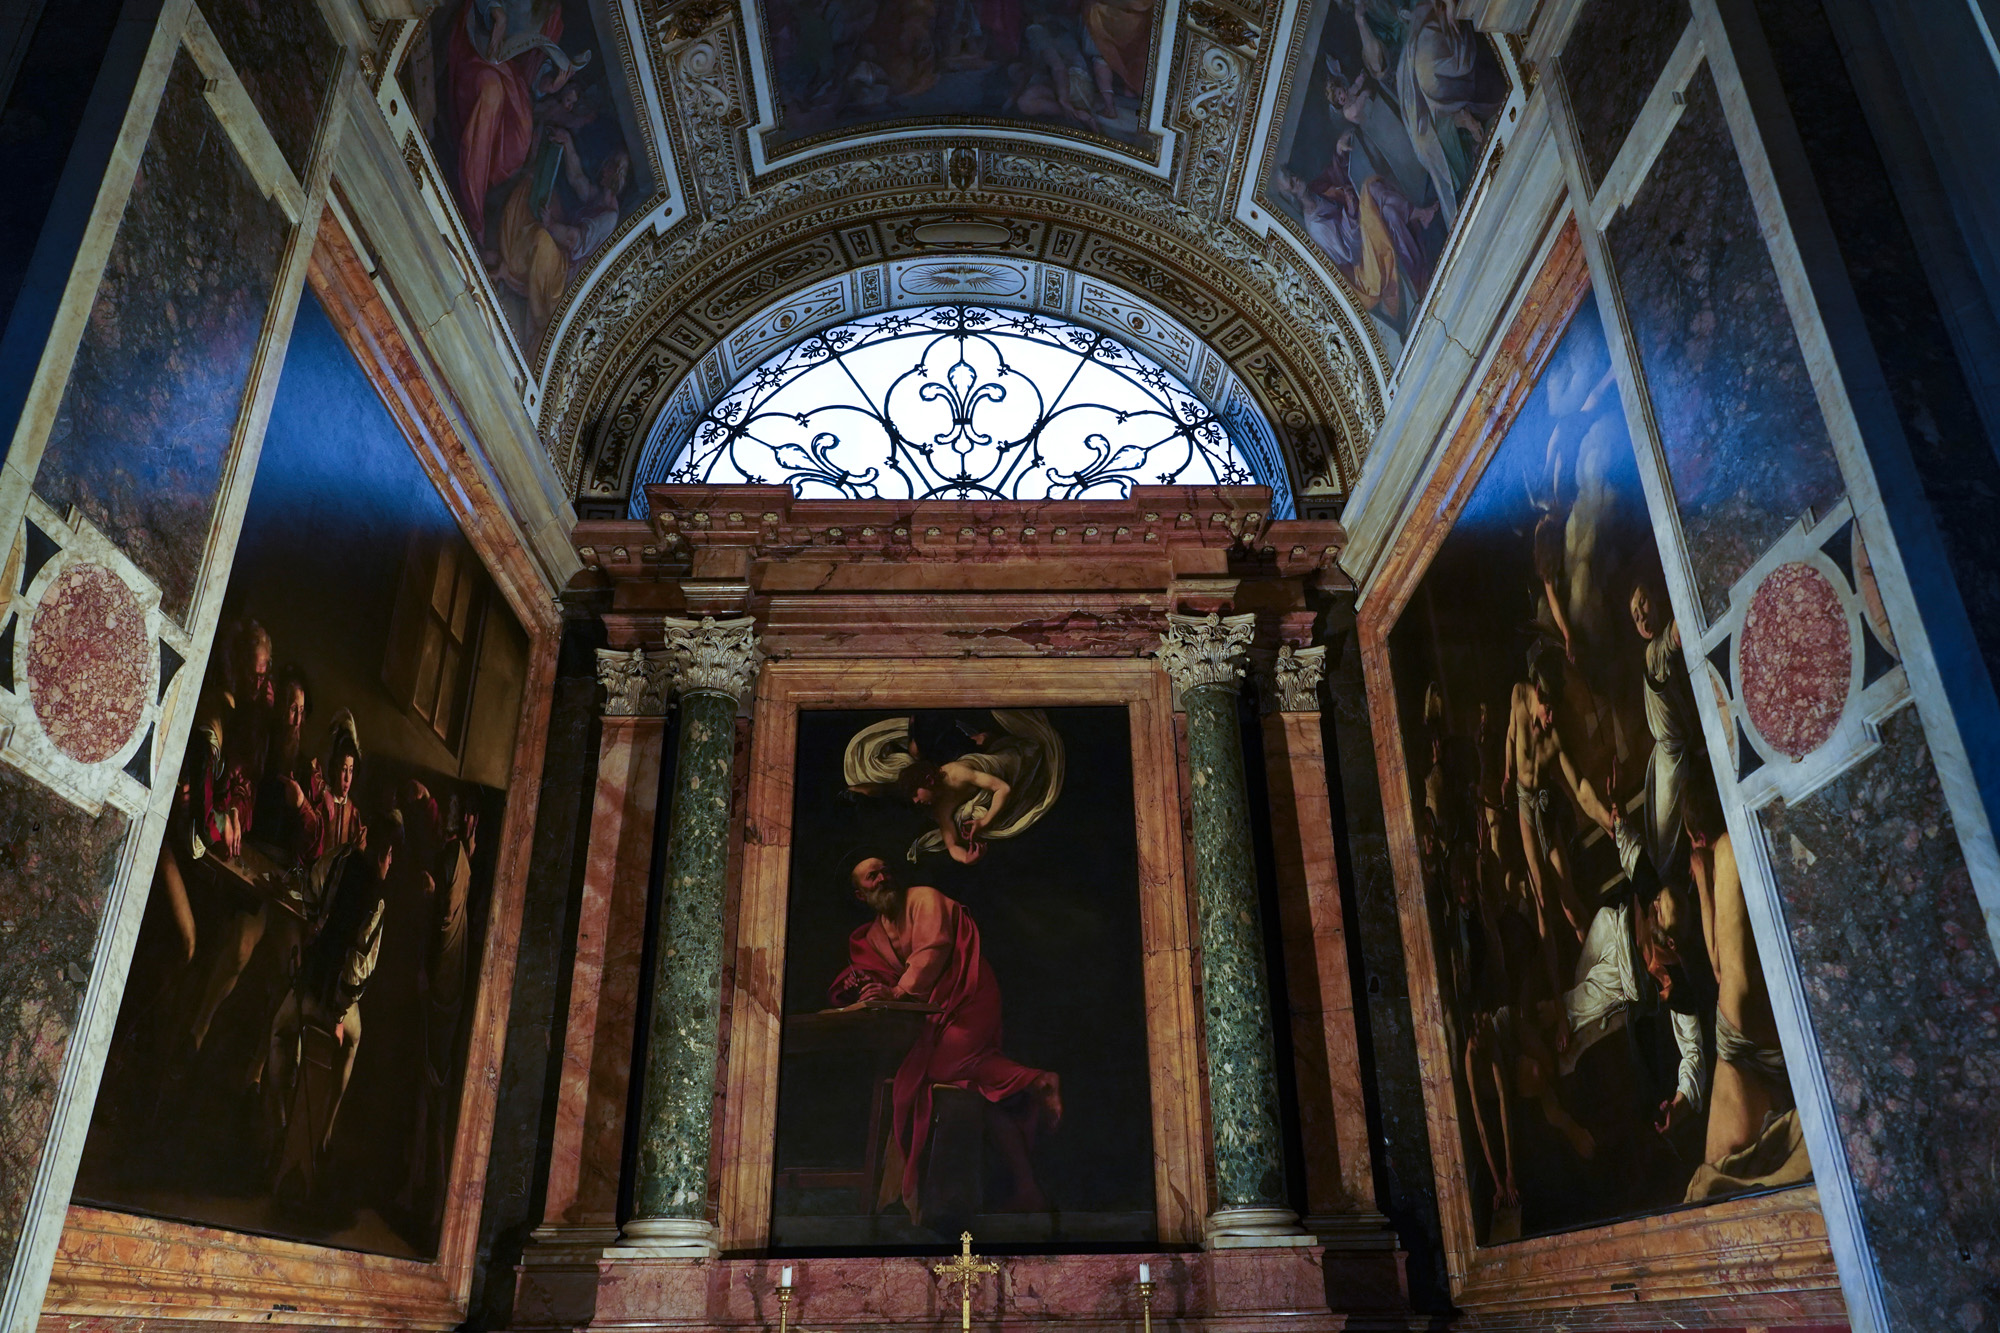 Caravaggio's 3 paintings in the Contarelli Chapel